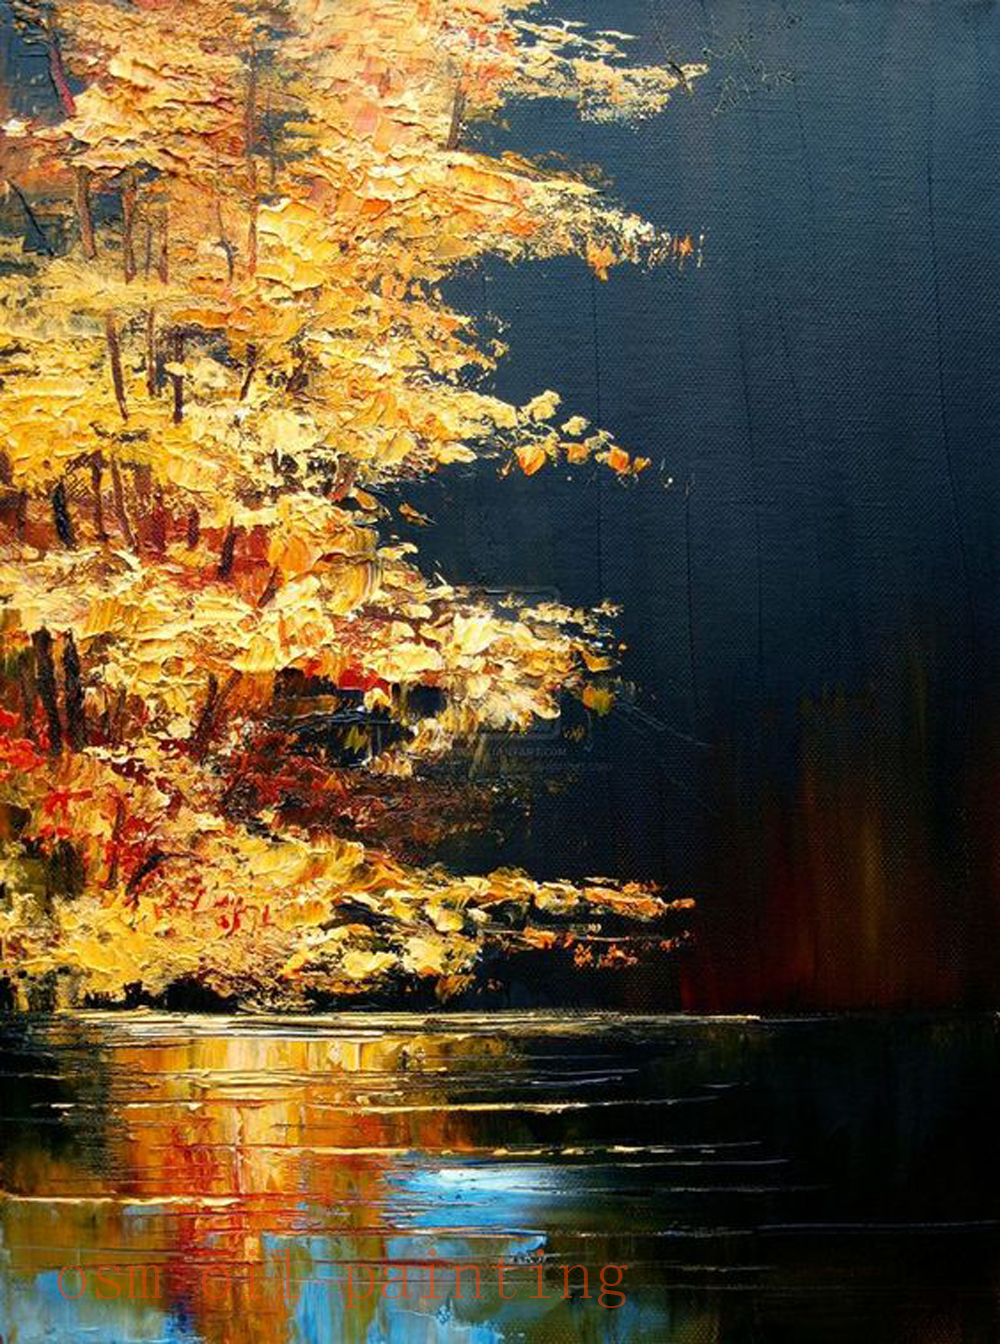 Handmade Amazing Art Knife Oil Paintings on Canvas Gold Yellow Tones Combined Such Light Bloom Tree Landscape Hang on the Wall